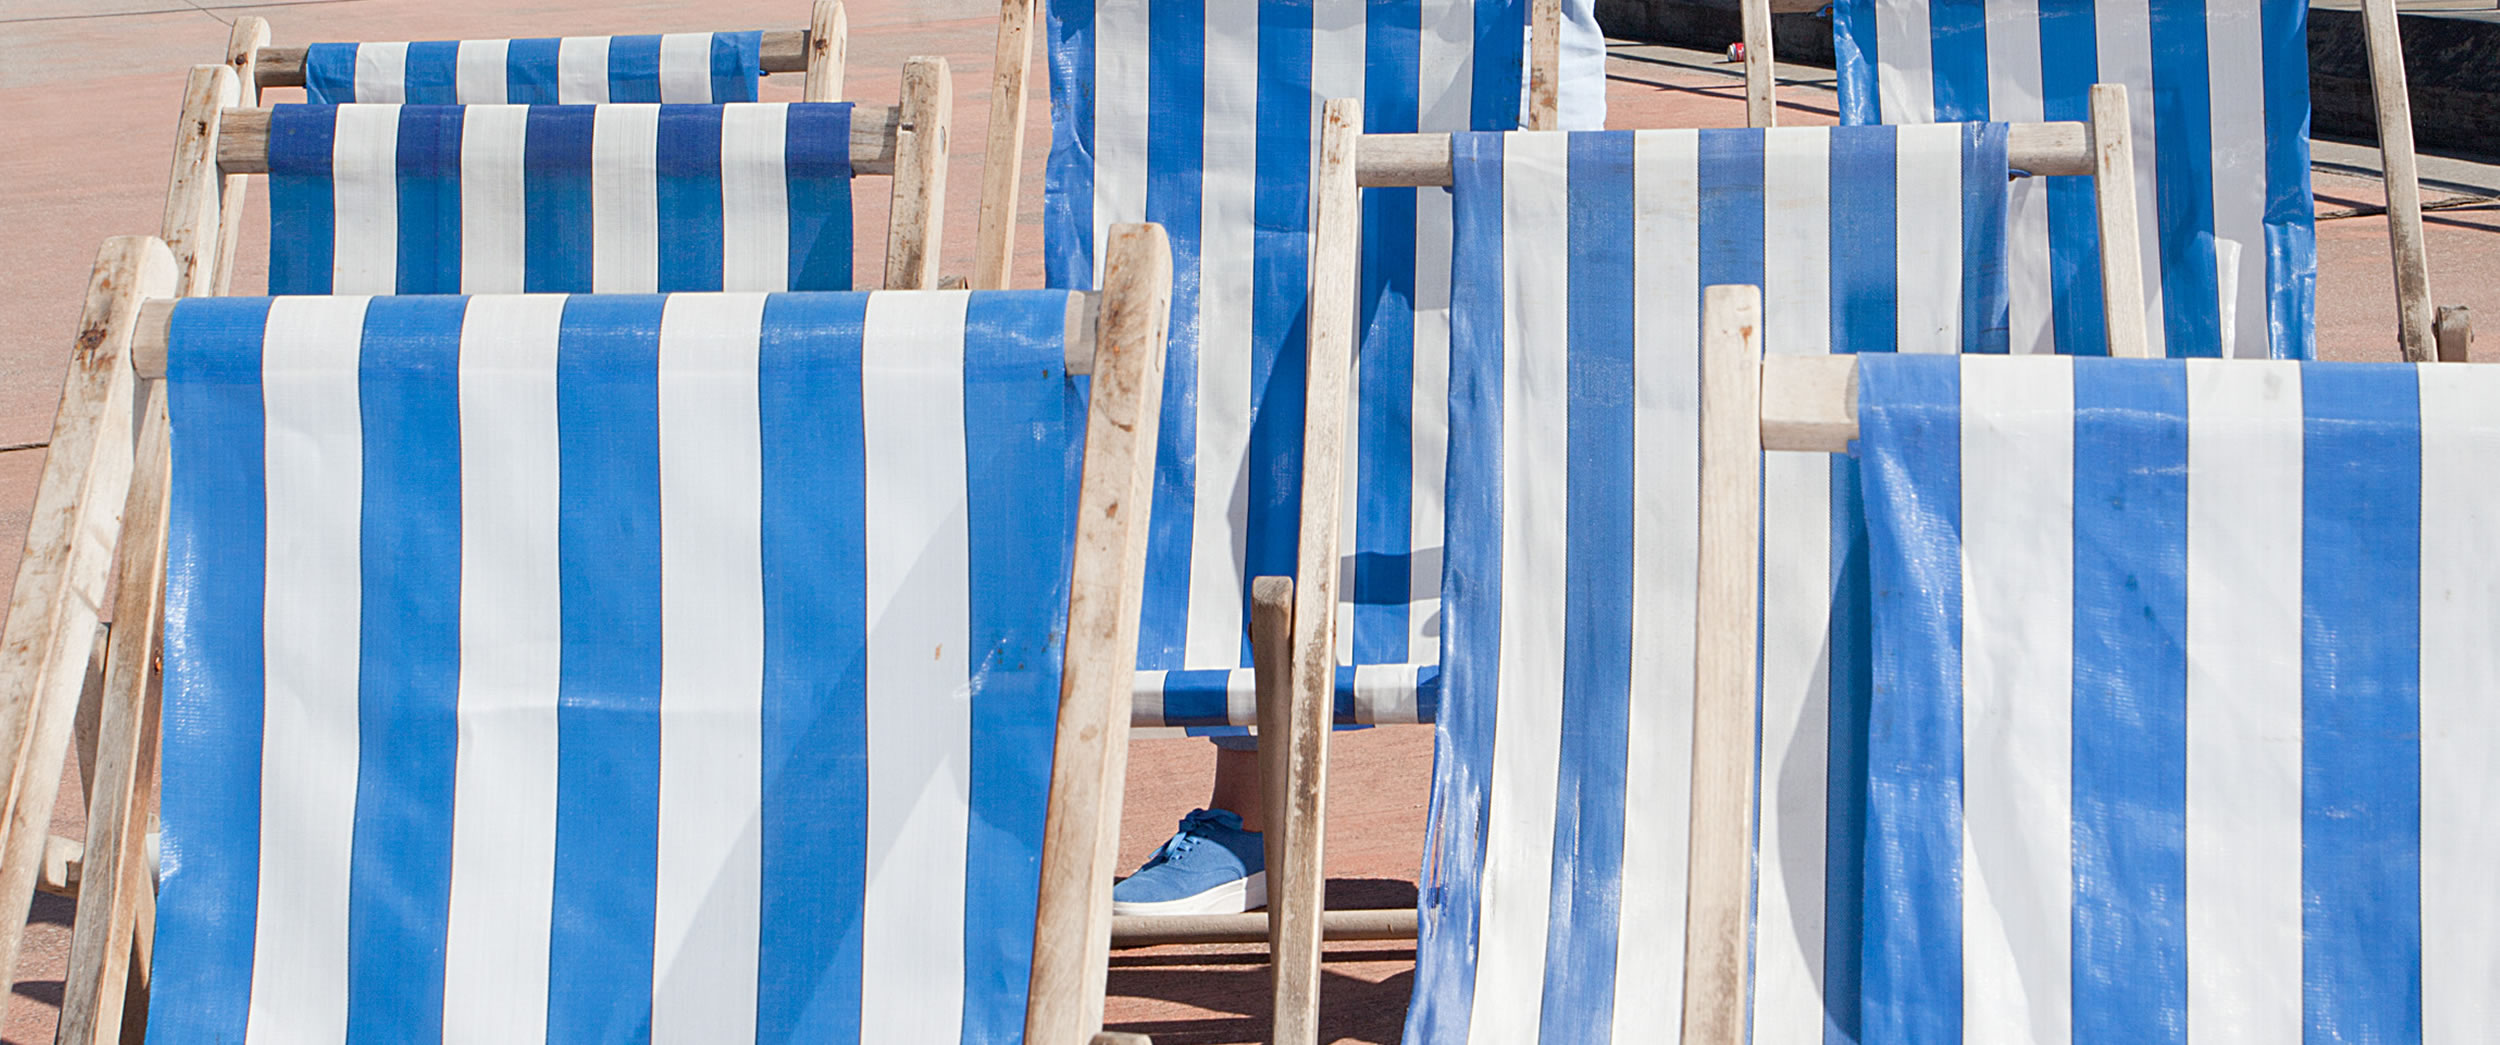 Buy Blackpool Deckchairs